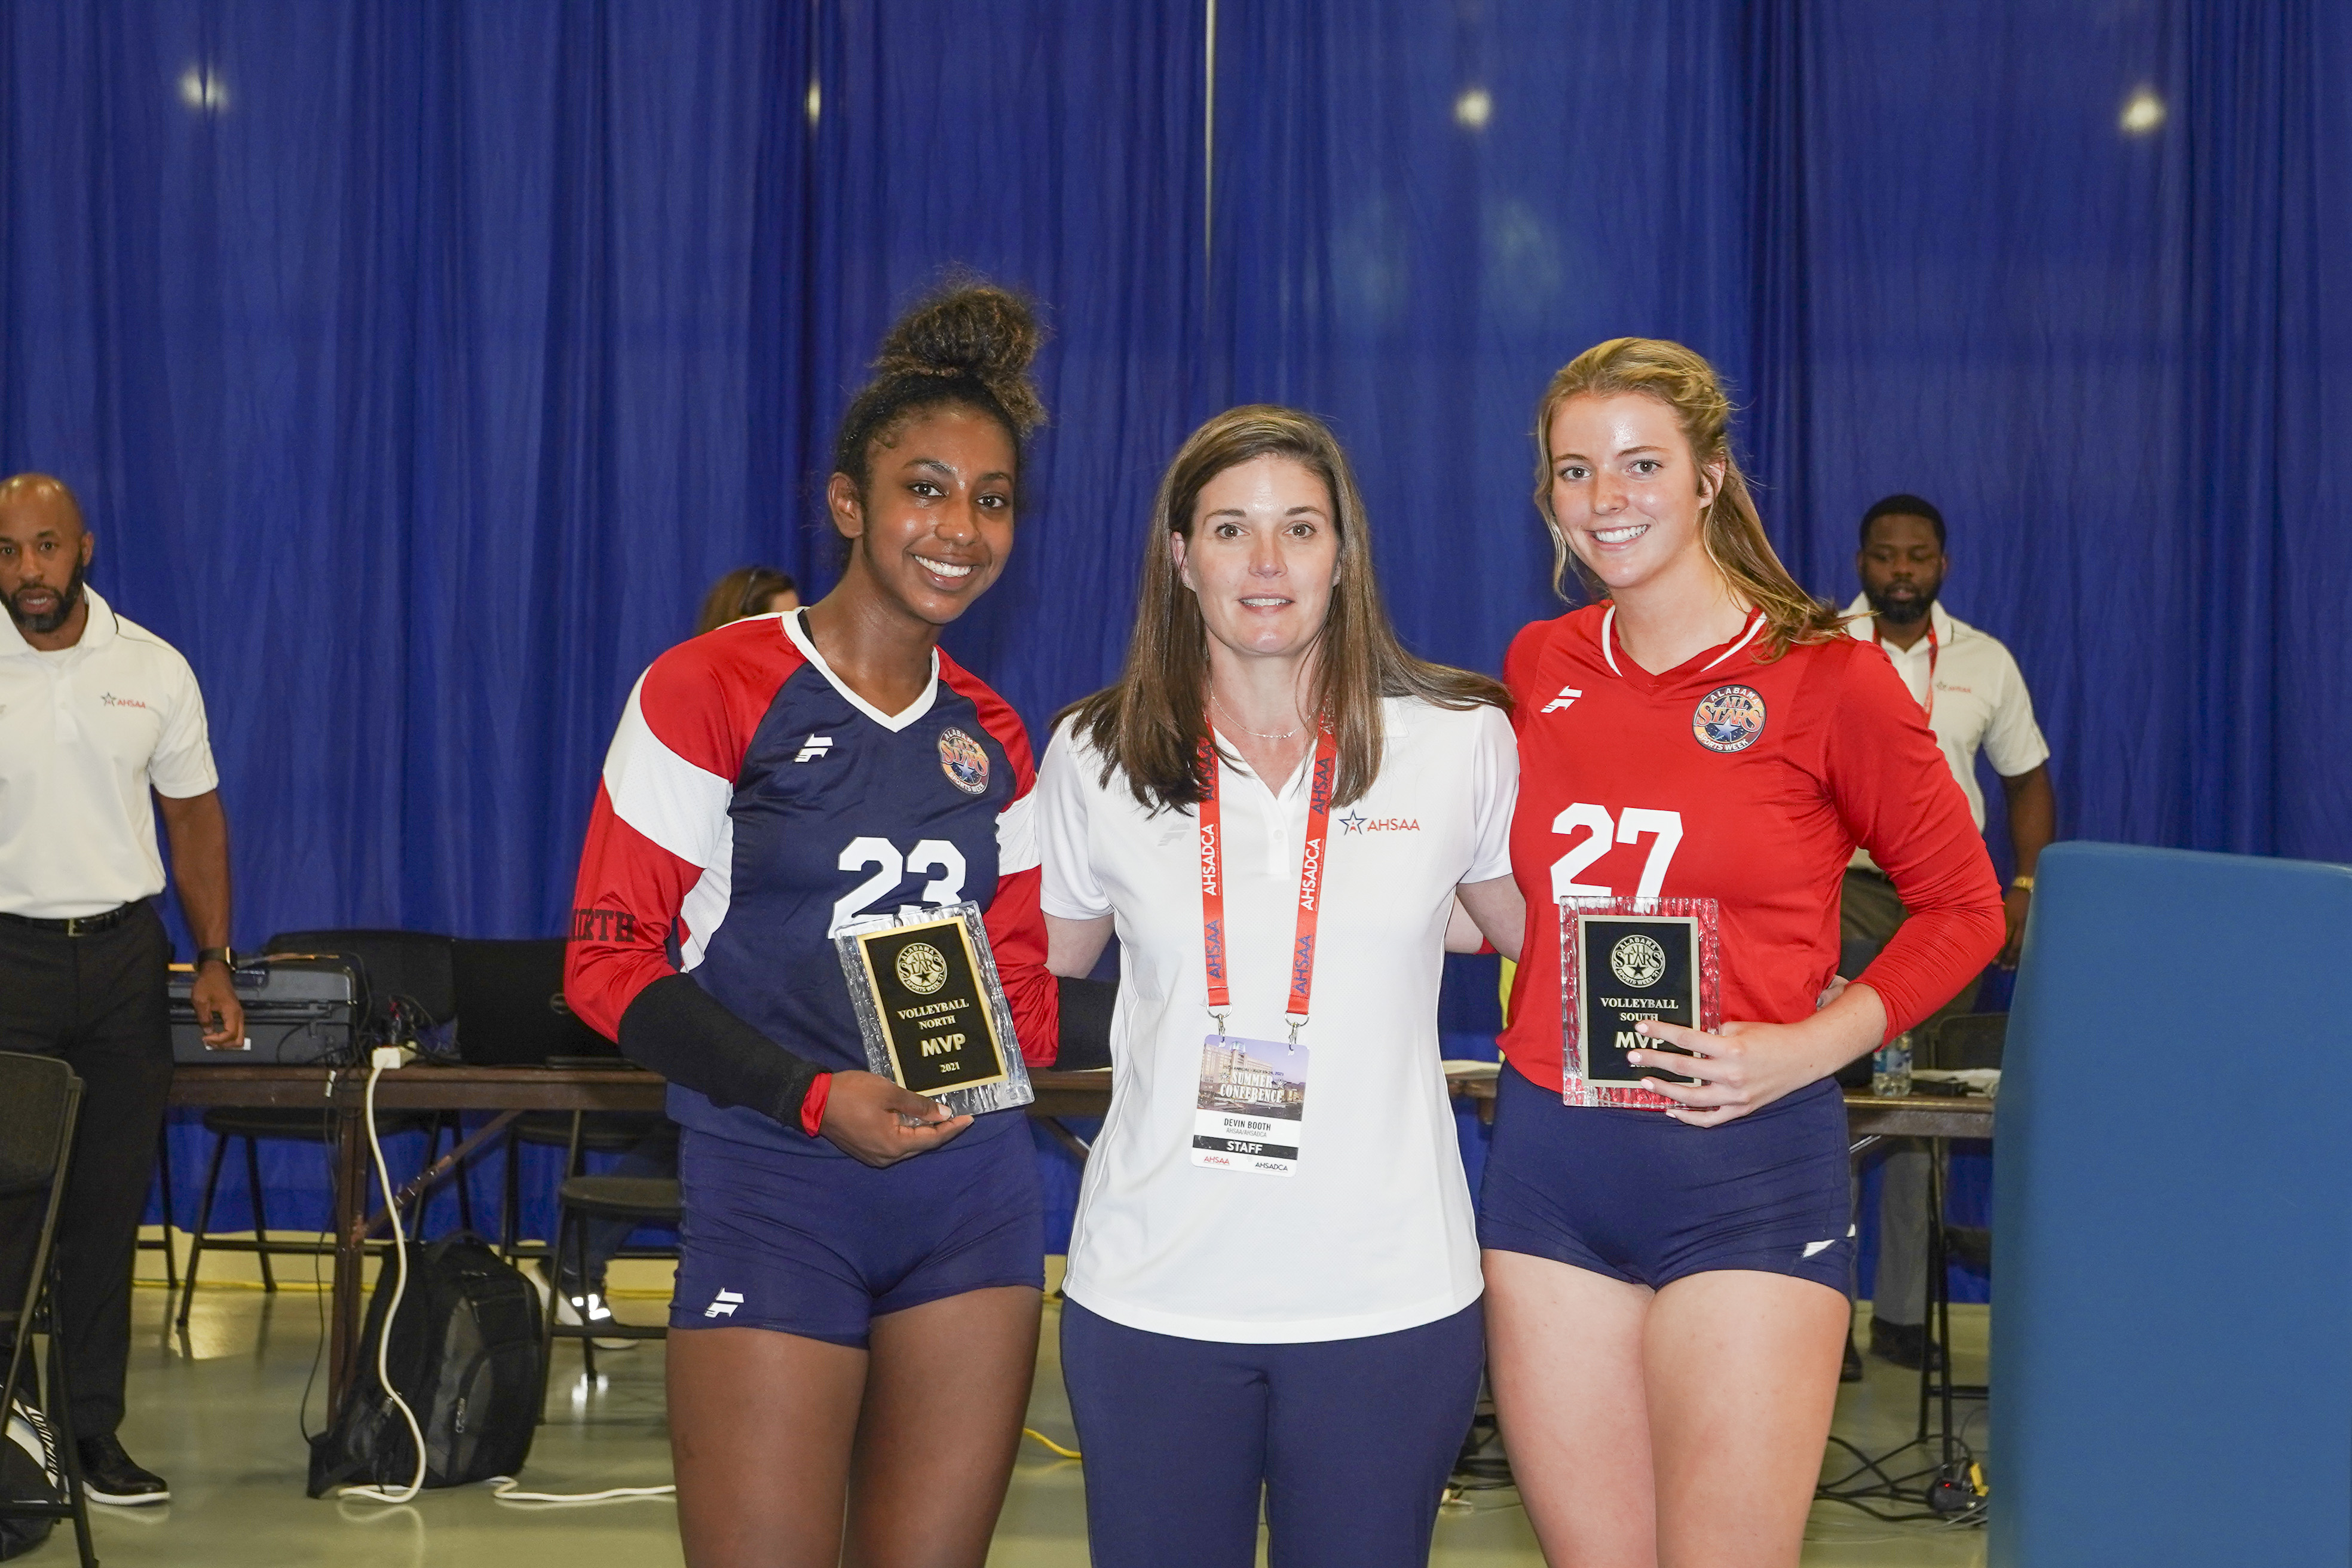 South Sweeps North in All-Star Volleyball 3-0